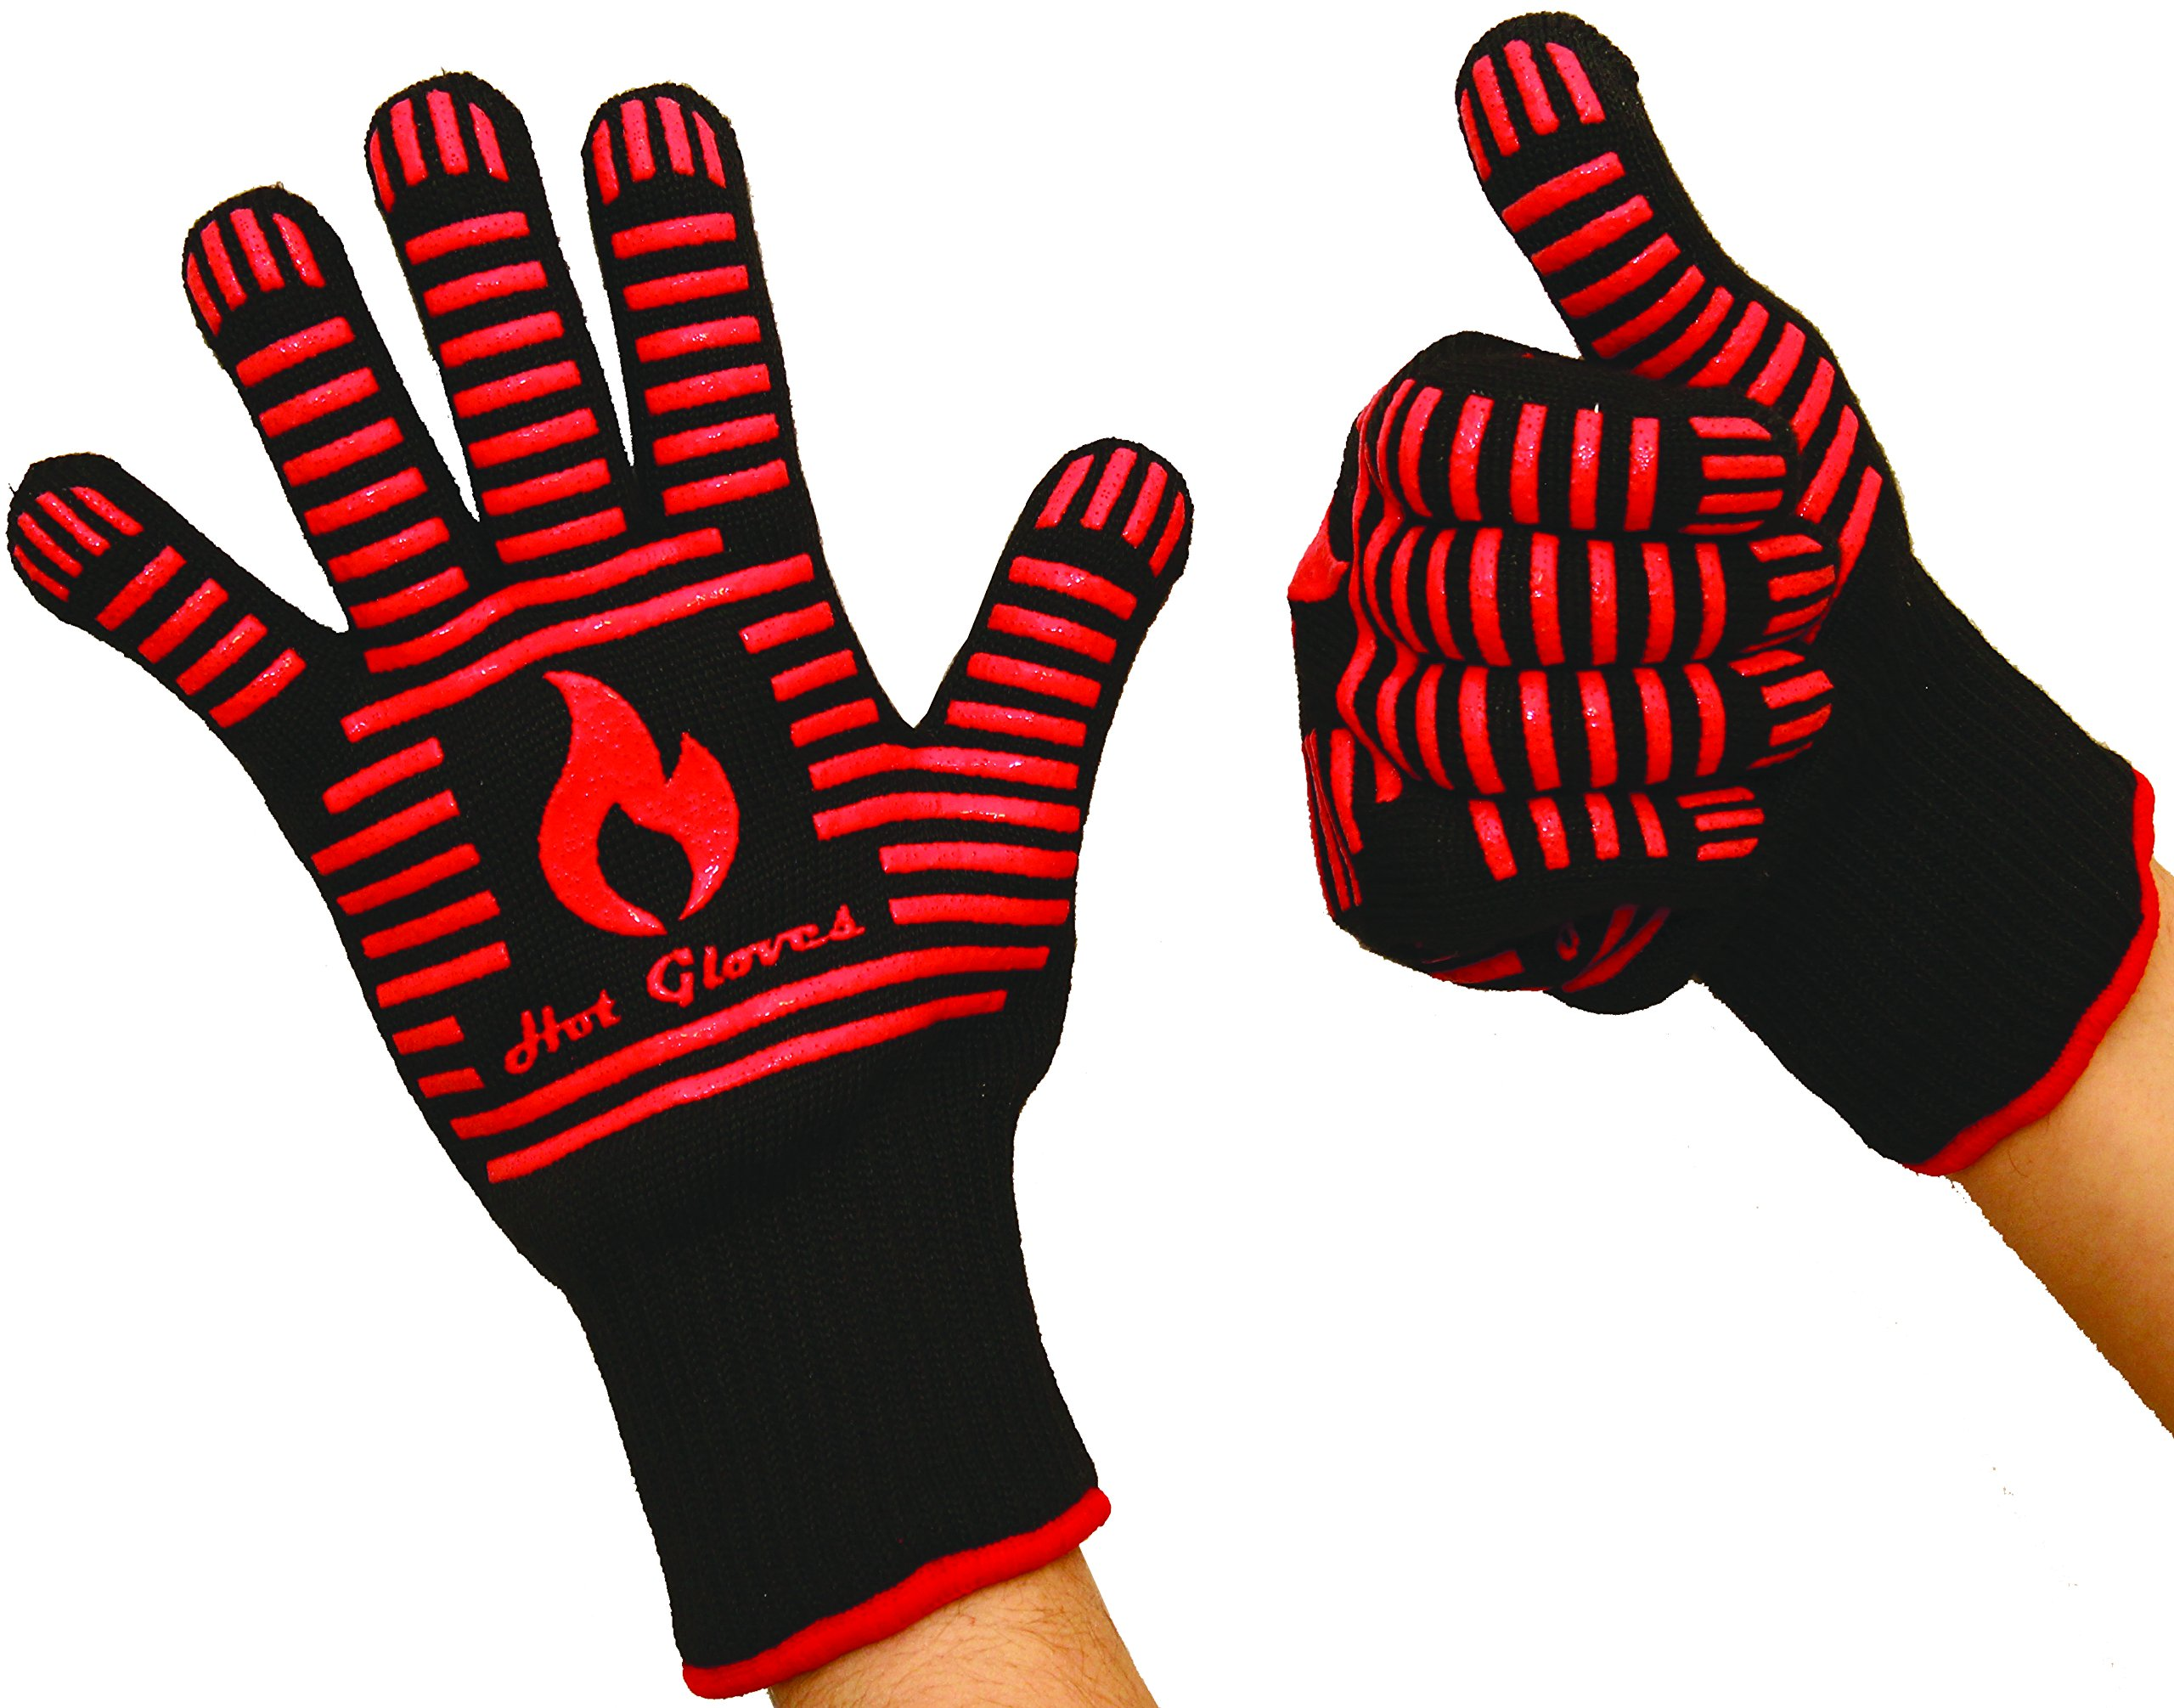 40% OFF! - HOT GLOVES - Extreme Heat Resistant Cooking Gloves - Premium Quality - Oven Gloves - BBQ Gloves (2 Gloves - Black) + Bonus: Premium BBQ Recipes Cookbook